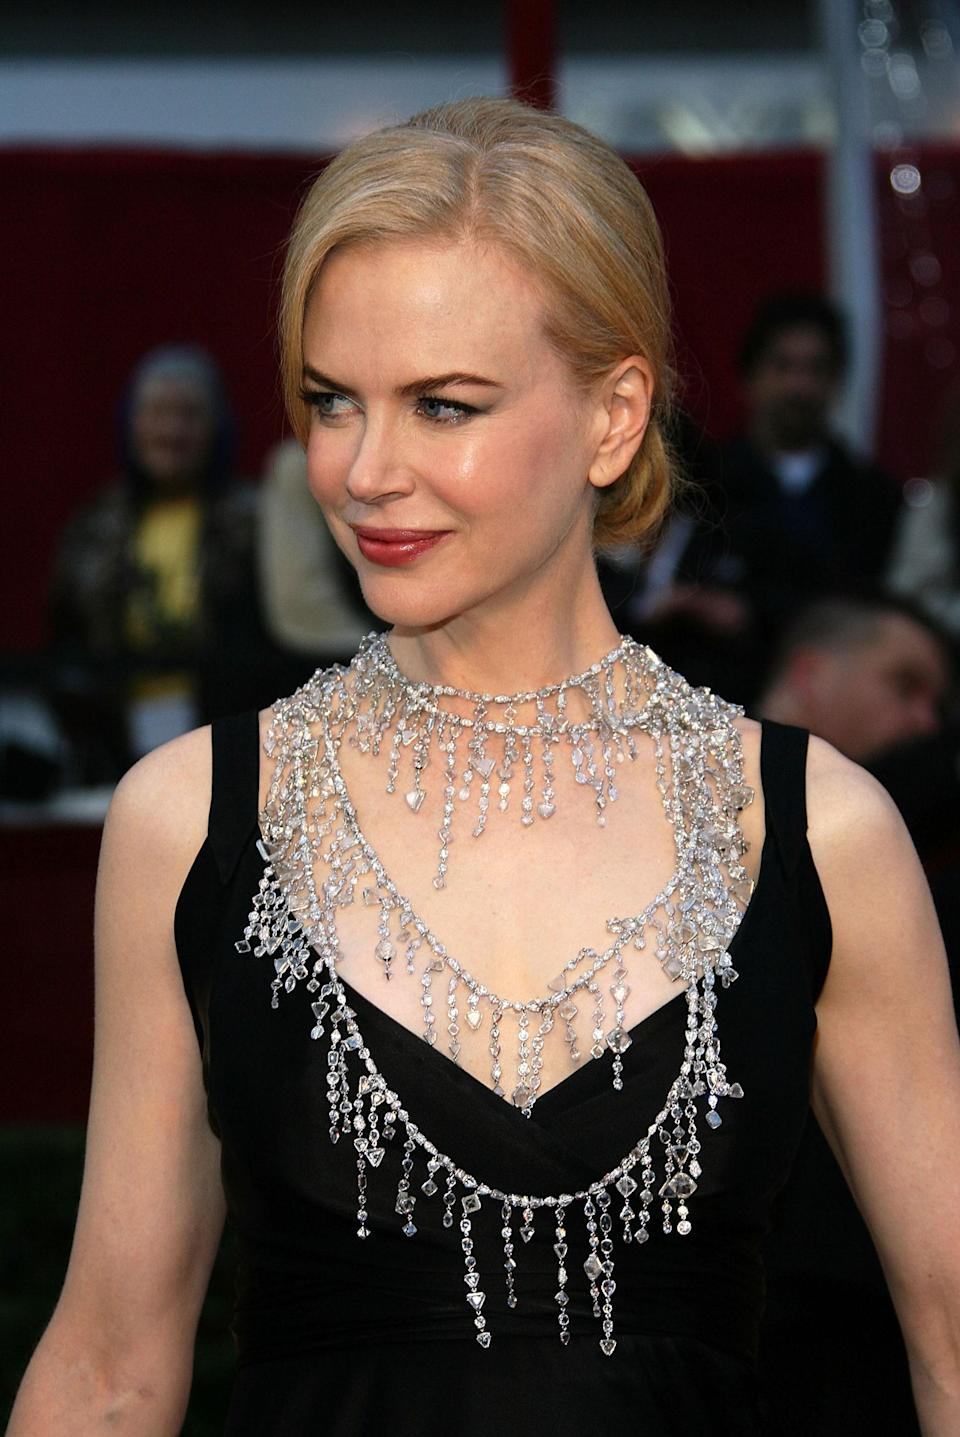 Repeat attendee Nicole Kidman has worn more than her share of great jewels at the Oscars, but the sautoir-style necklace she wore to the 2008 ceremony takes the cake. Designed by Kidman's then stylist, the late L'Wren Scott, the handcrafted chains with their drip effect required 7,500 diamonds and 6,200 hours of labor.